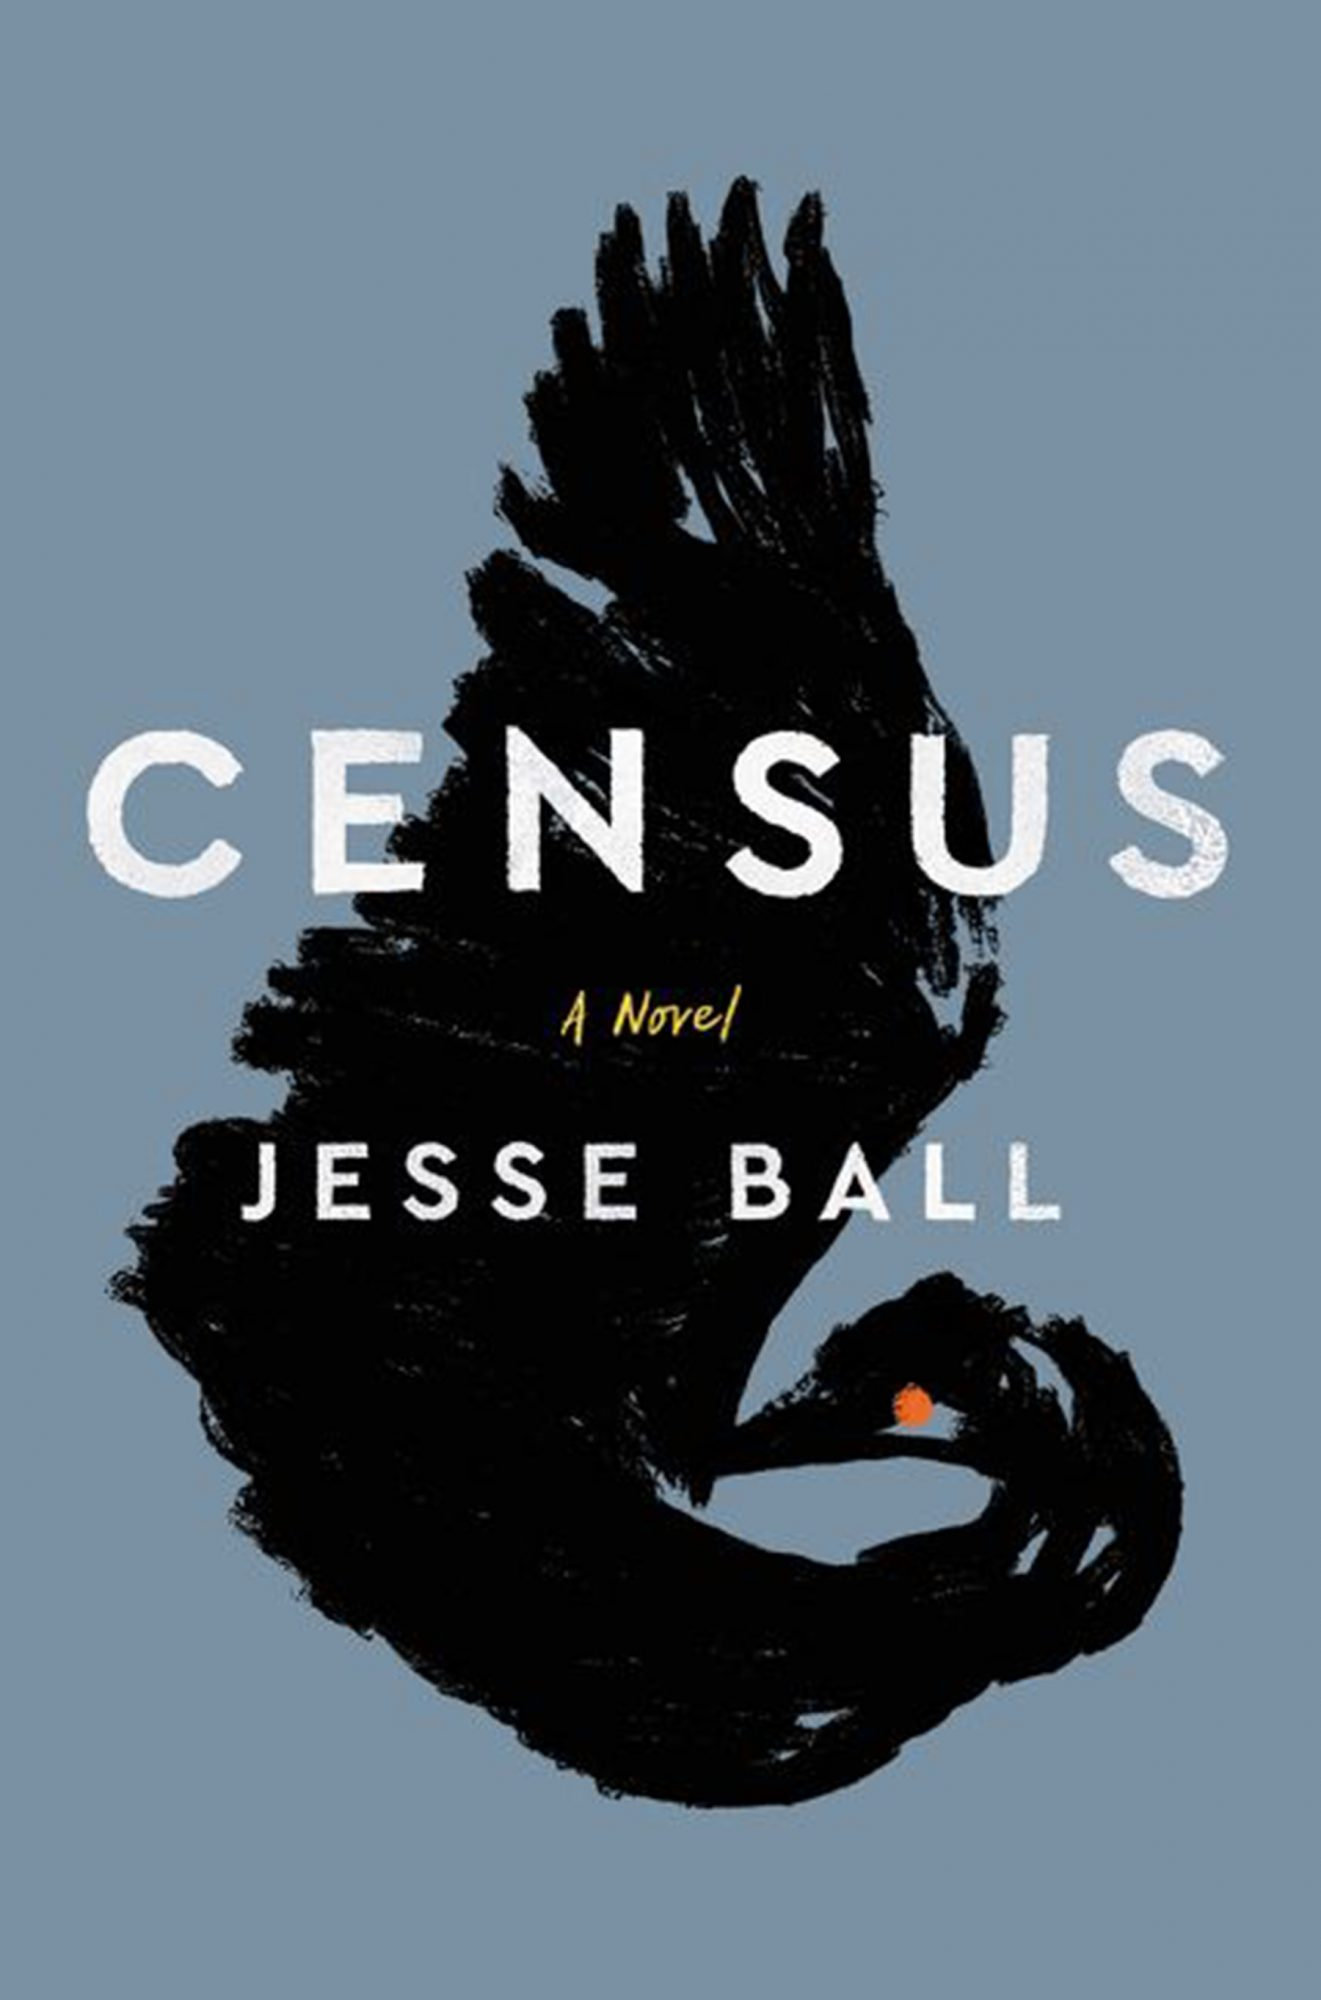 Census by Jesse Ball